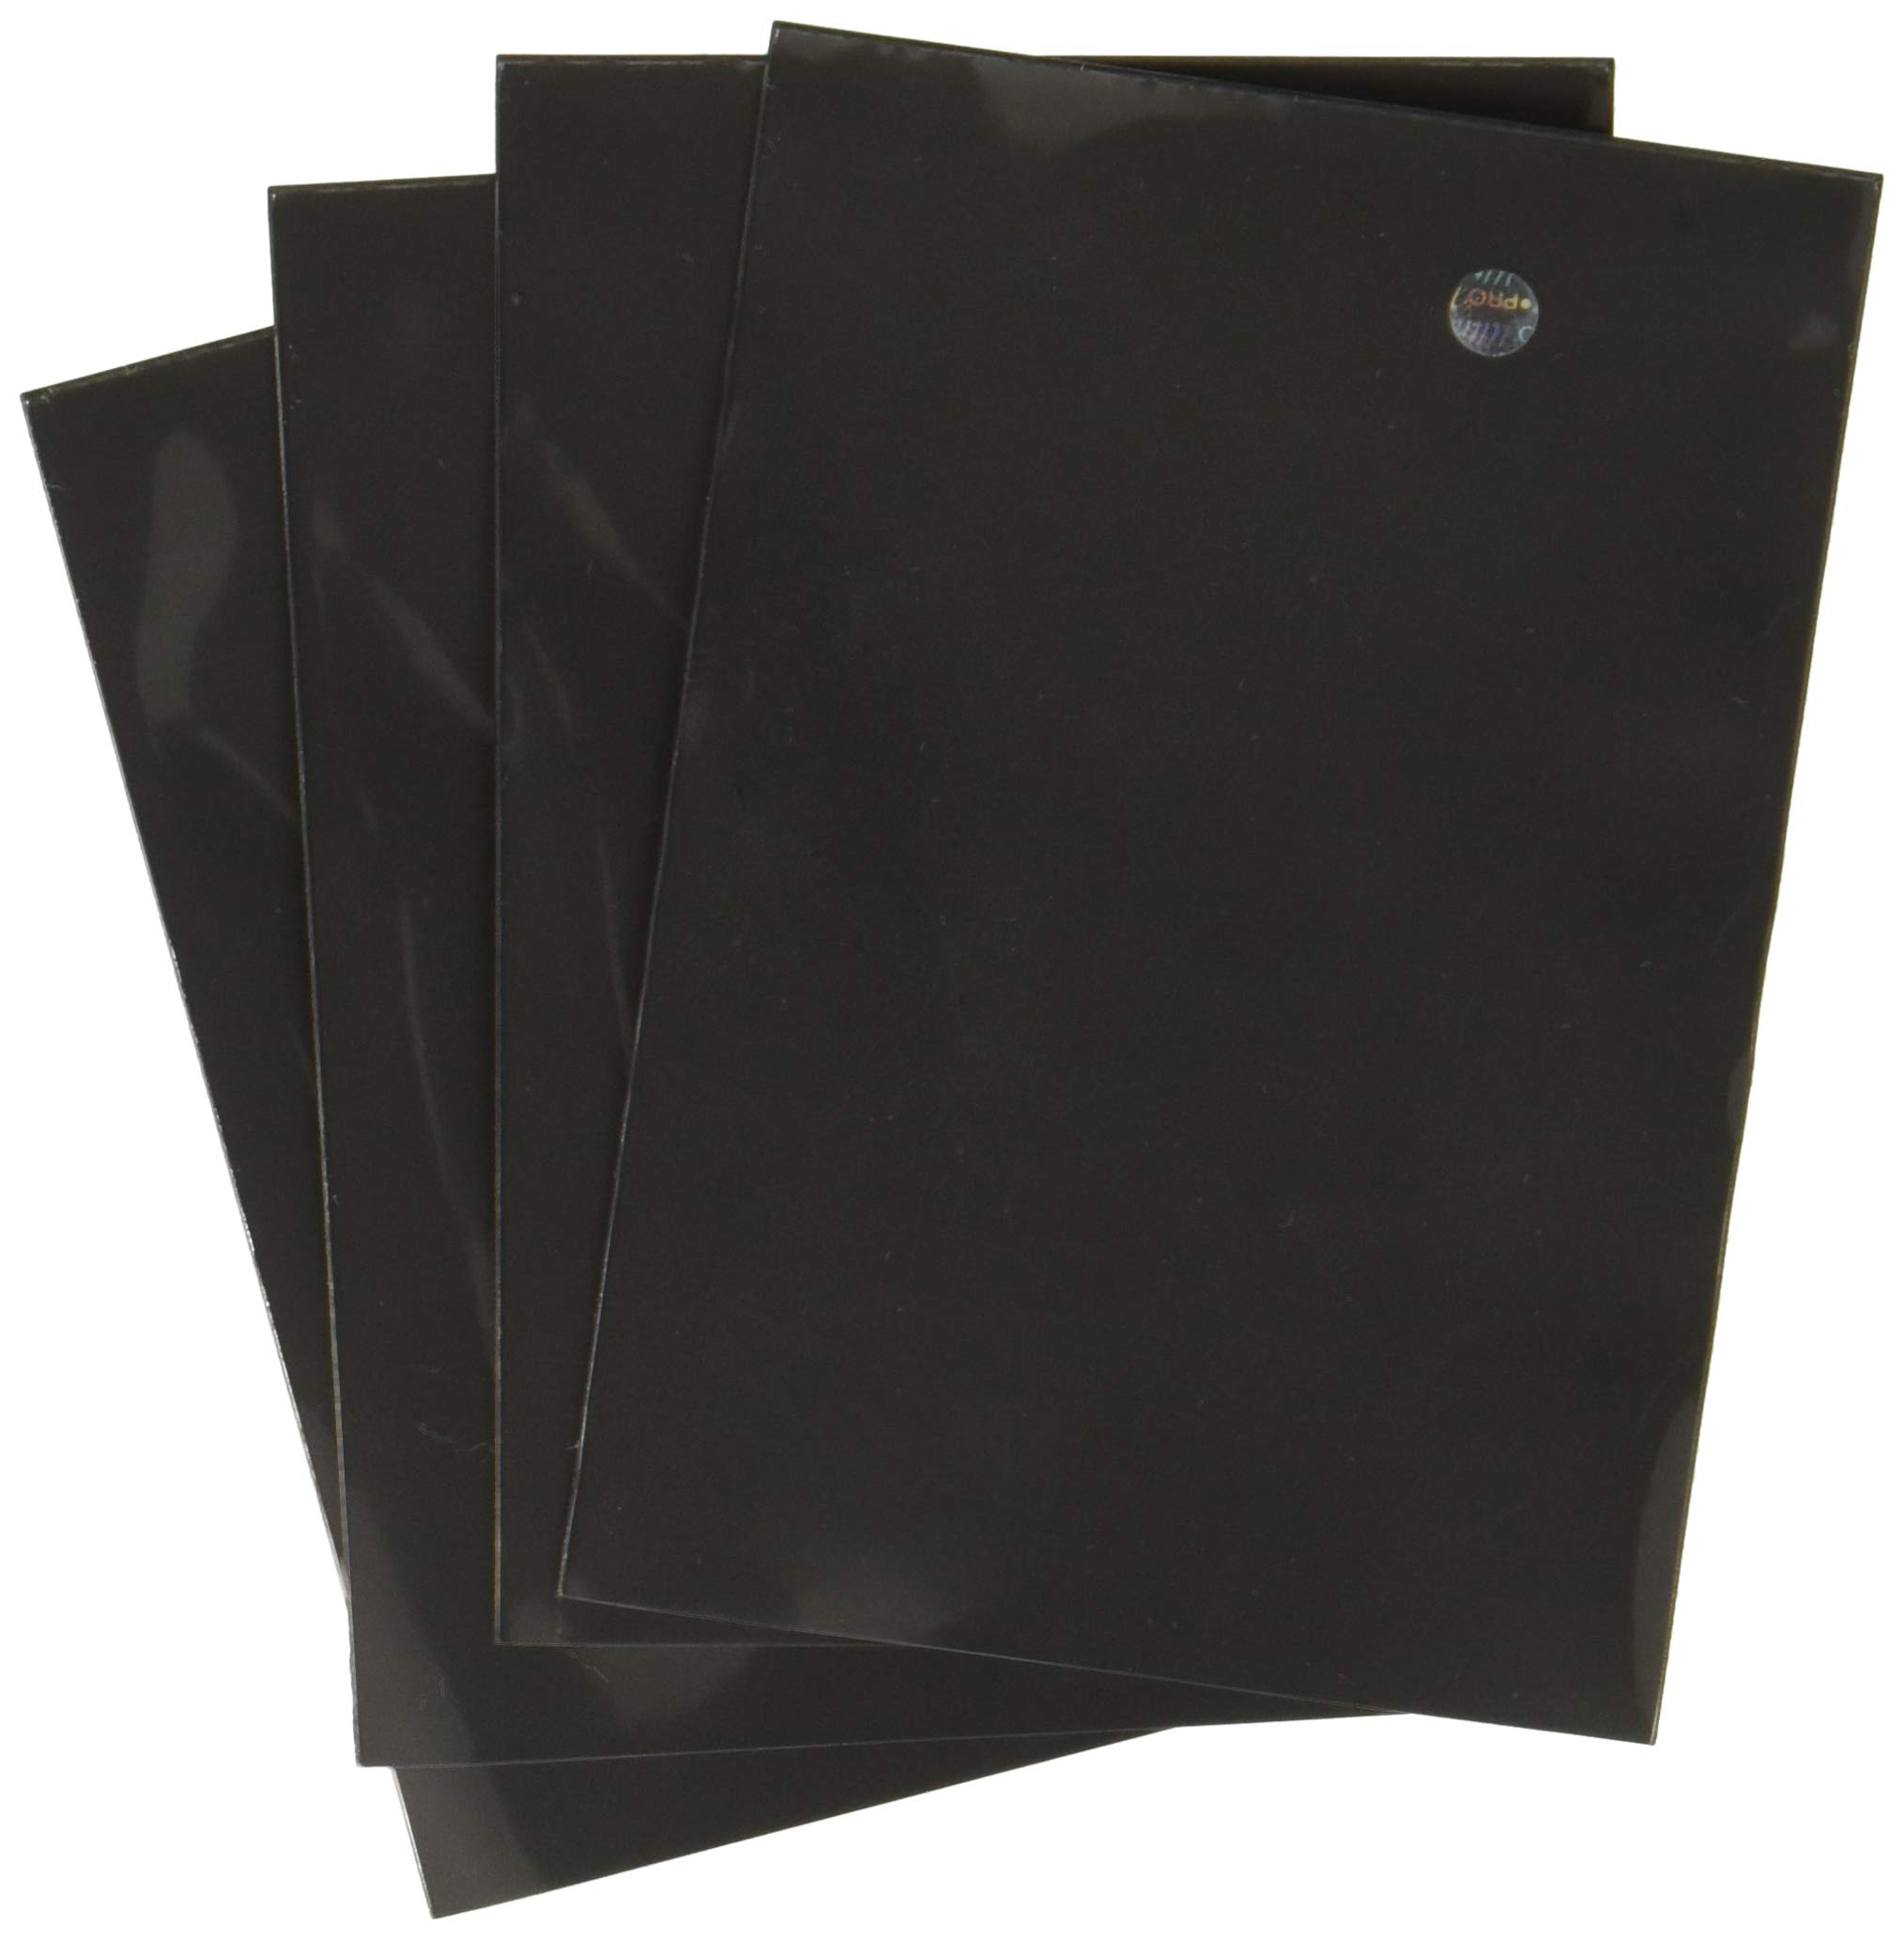 Ultra Pro Supplies Protector Sleeves